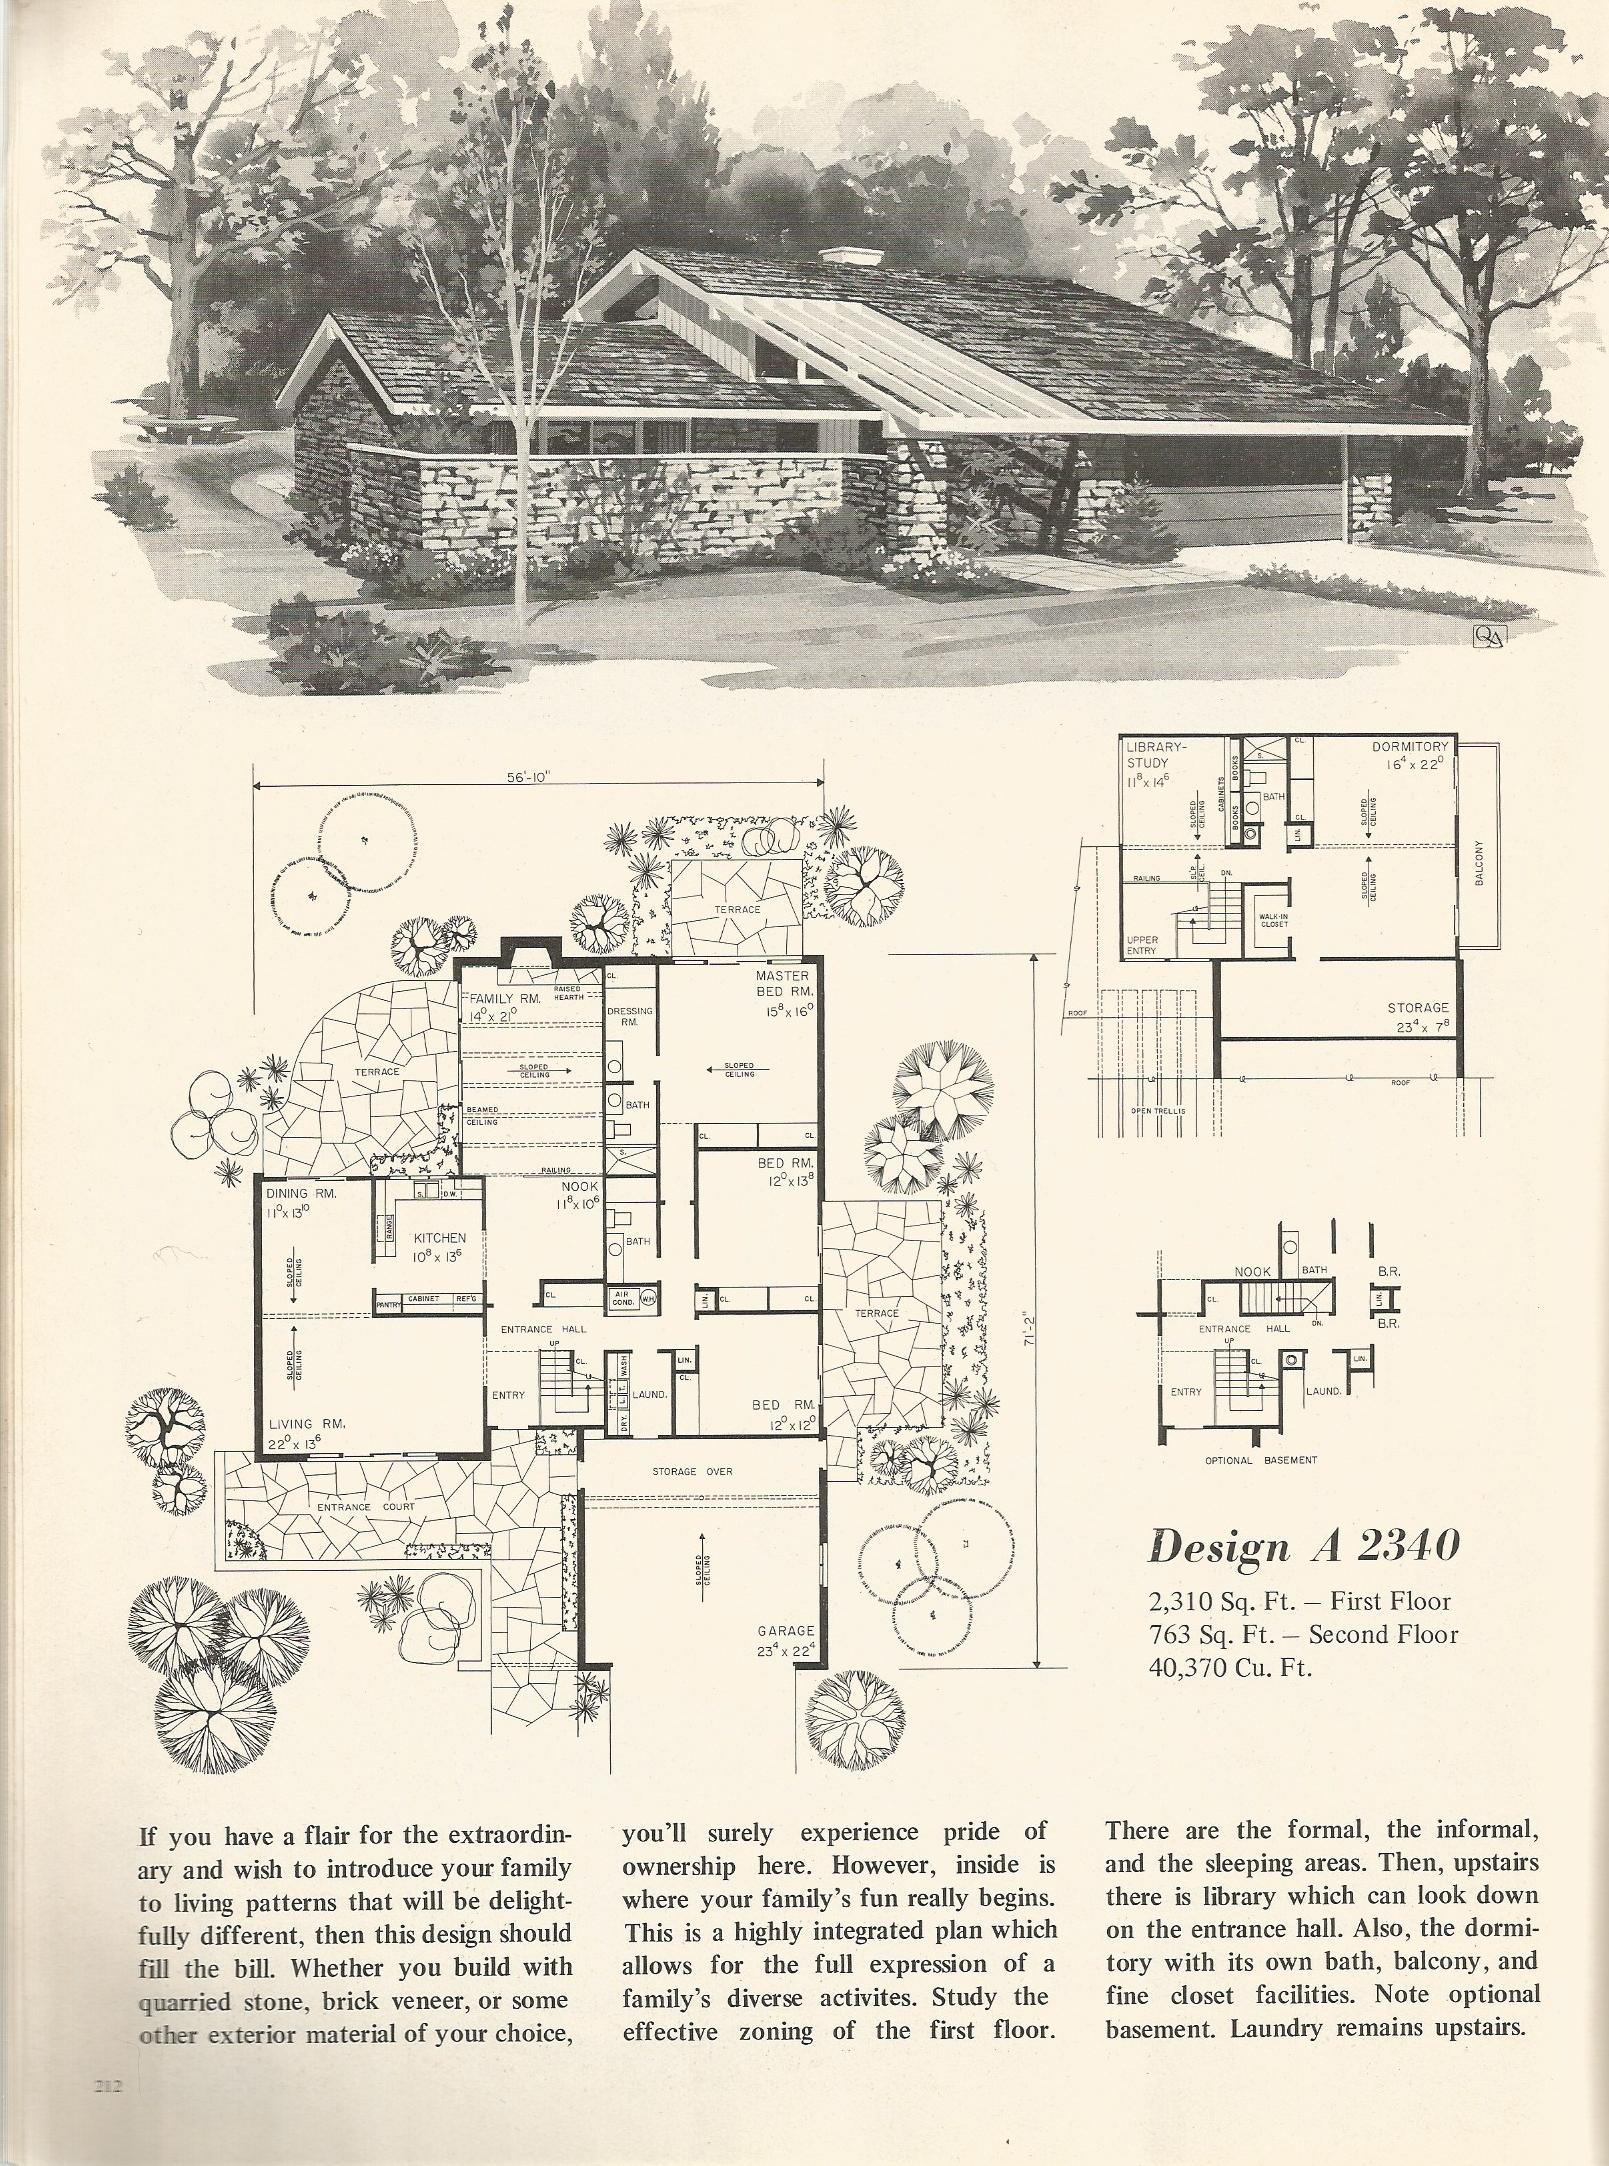 Vintage house plans 2340 antique alter ego for Vintage floor plans